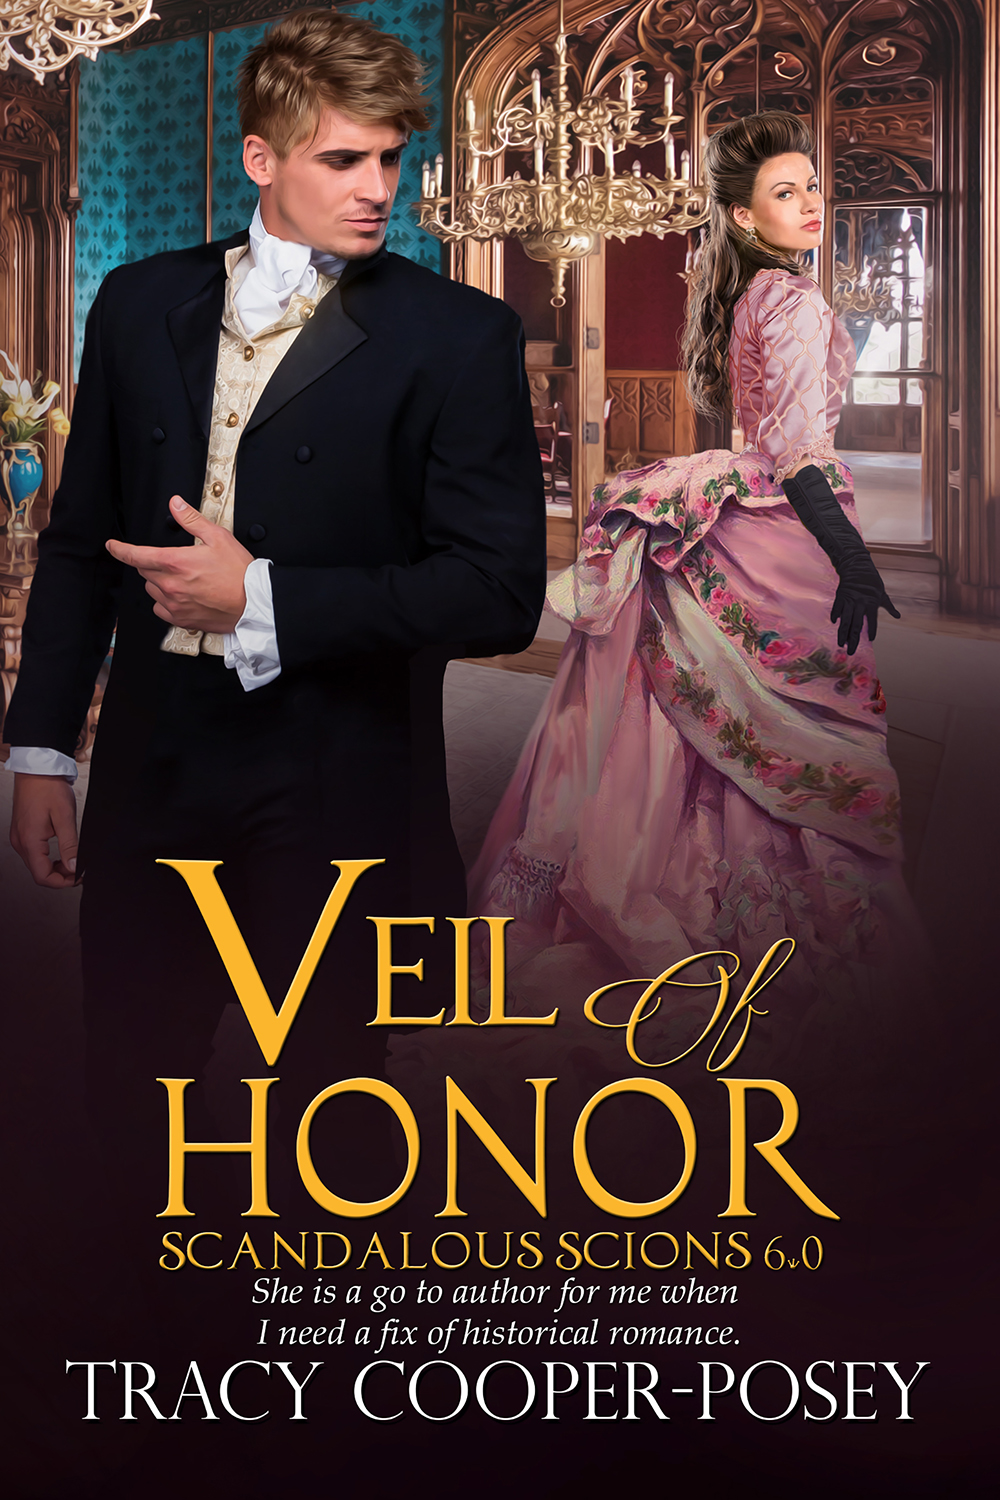 The latest Scandalous Scions historical romance is now released!